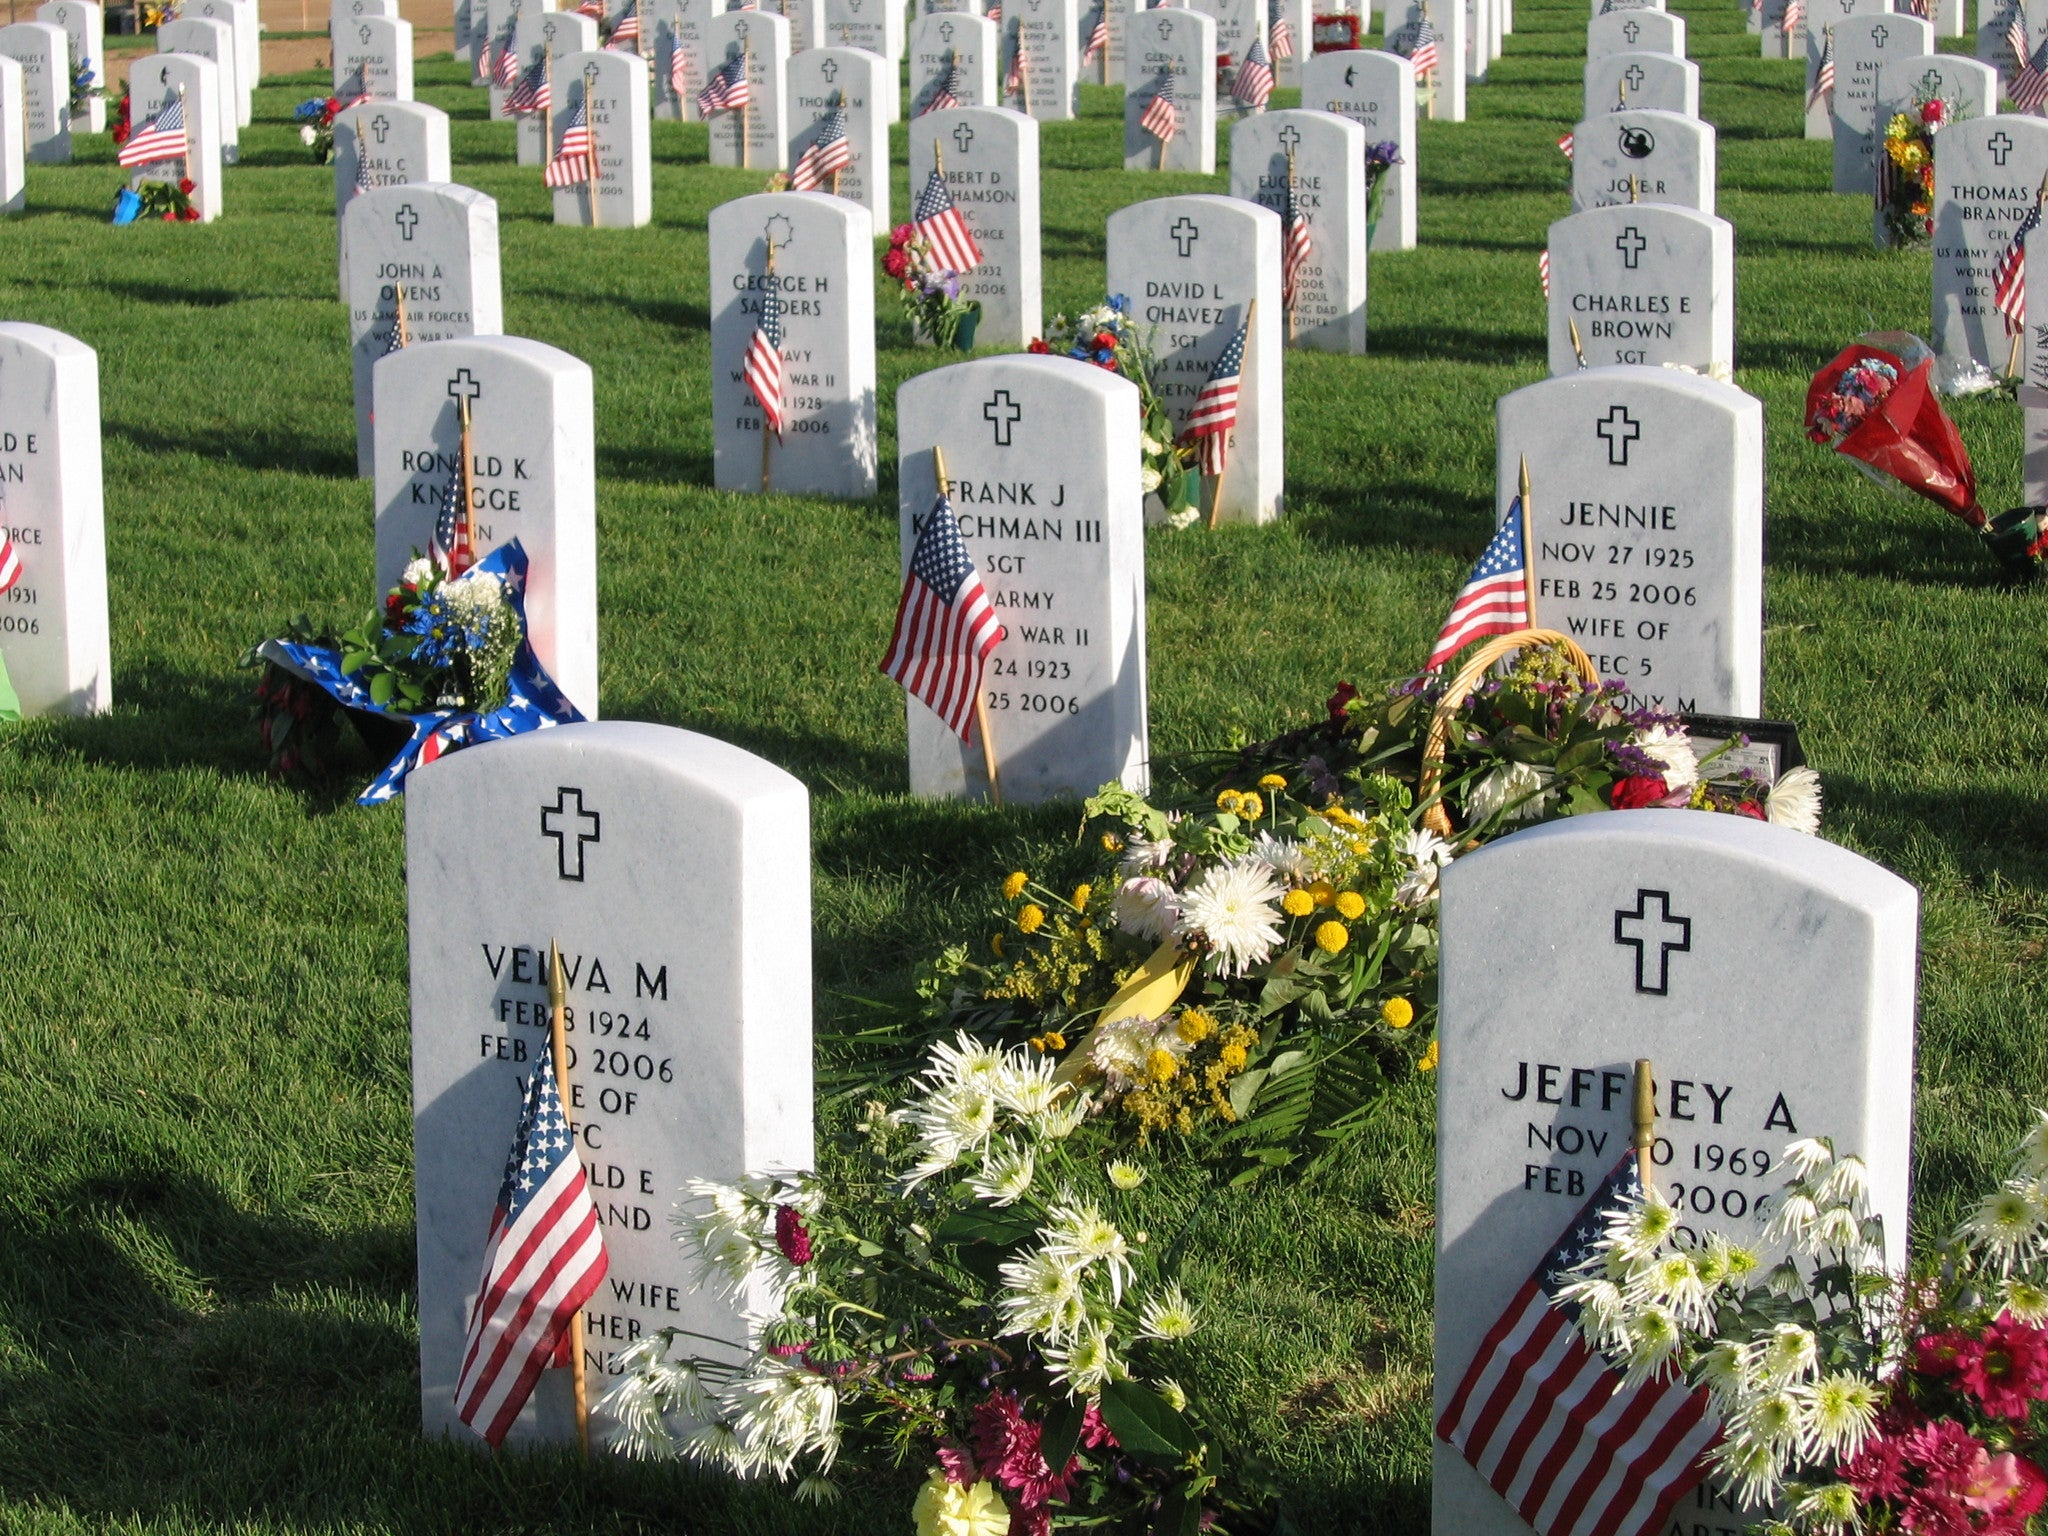 Veteran Honors Fallen by Placing Flags on their Graves for 35 Years!